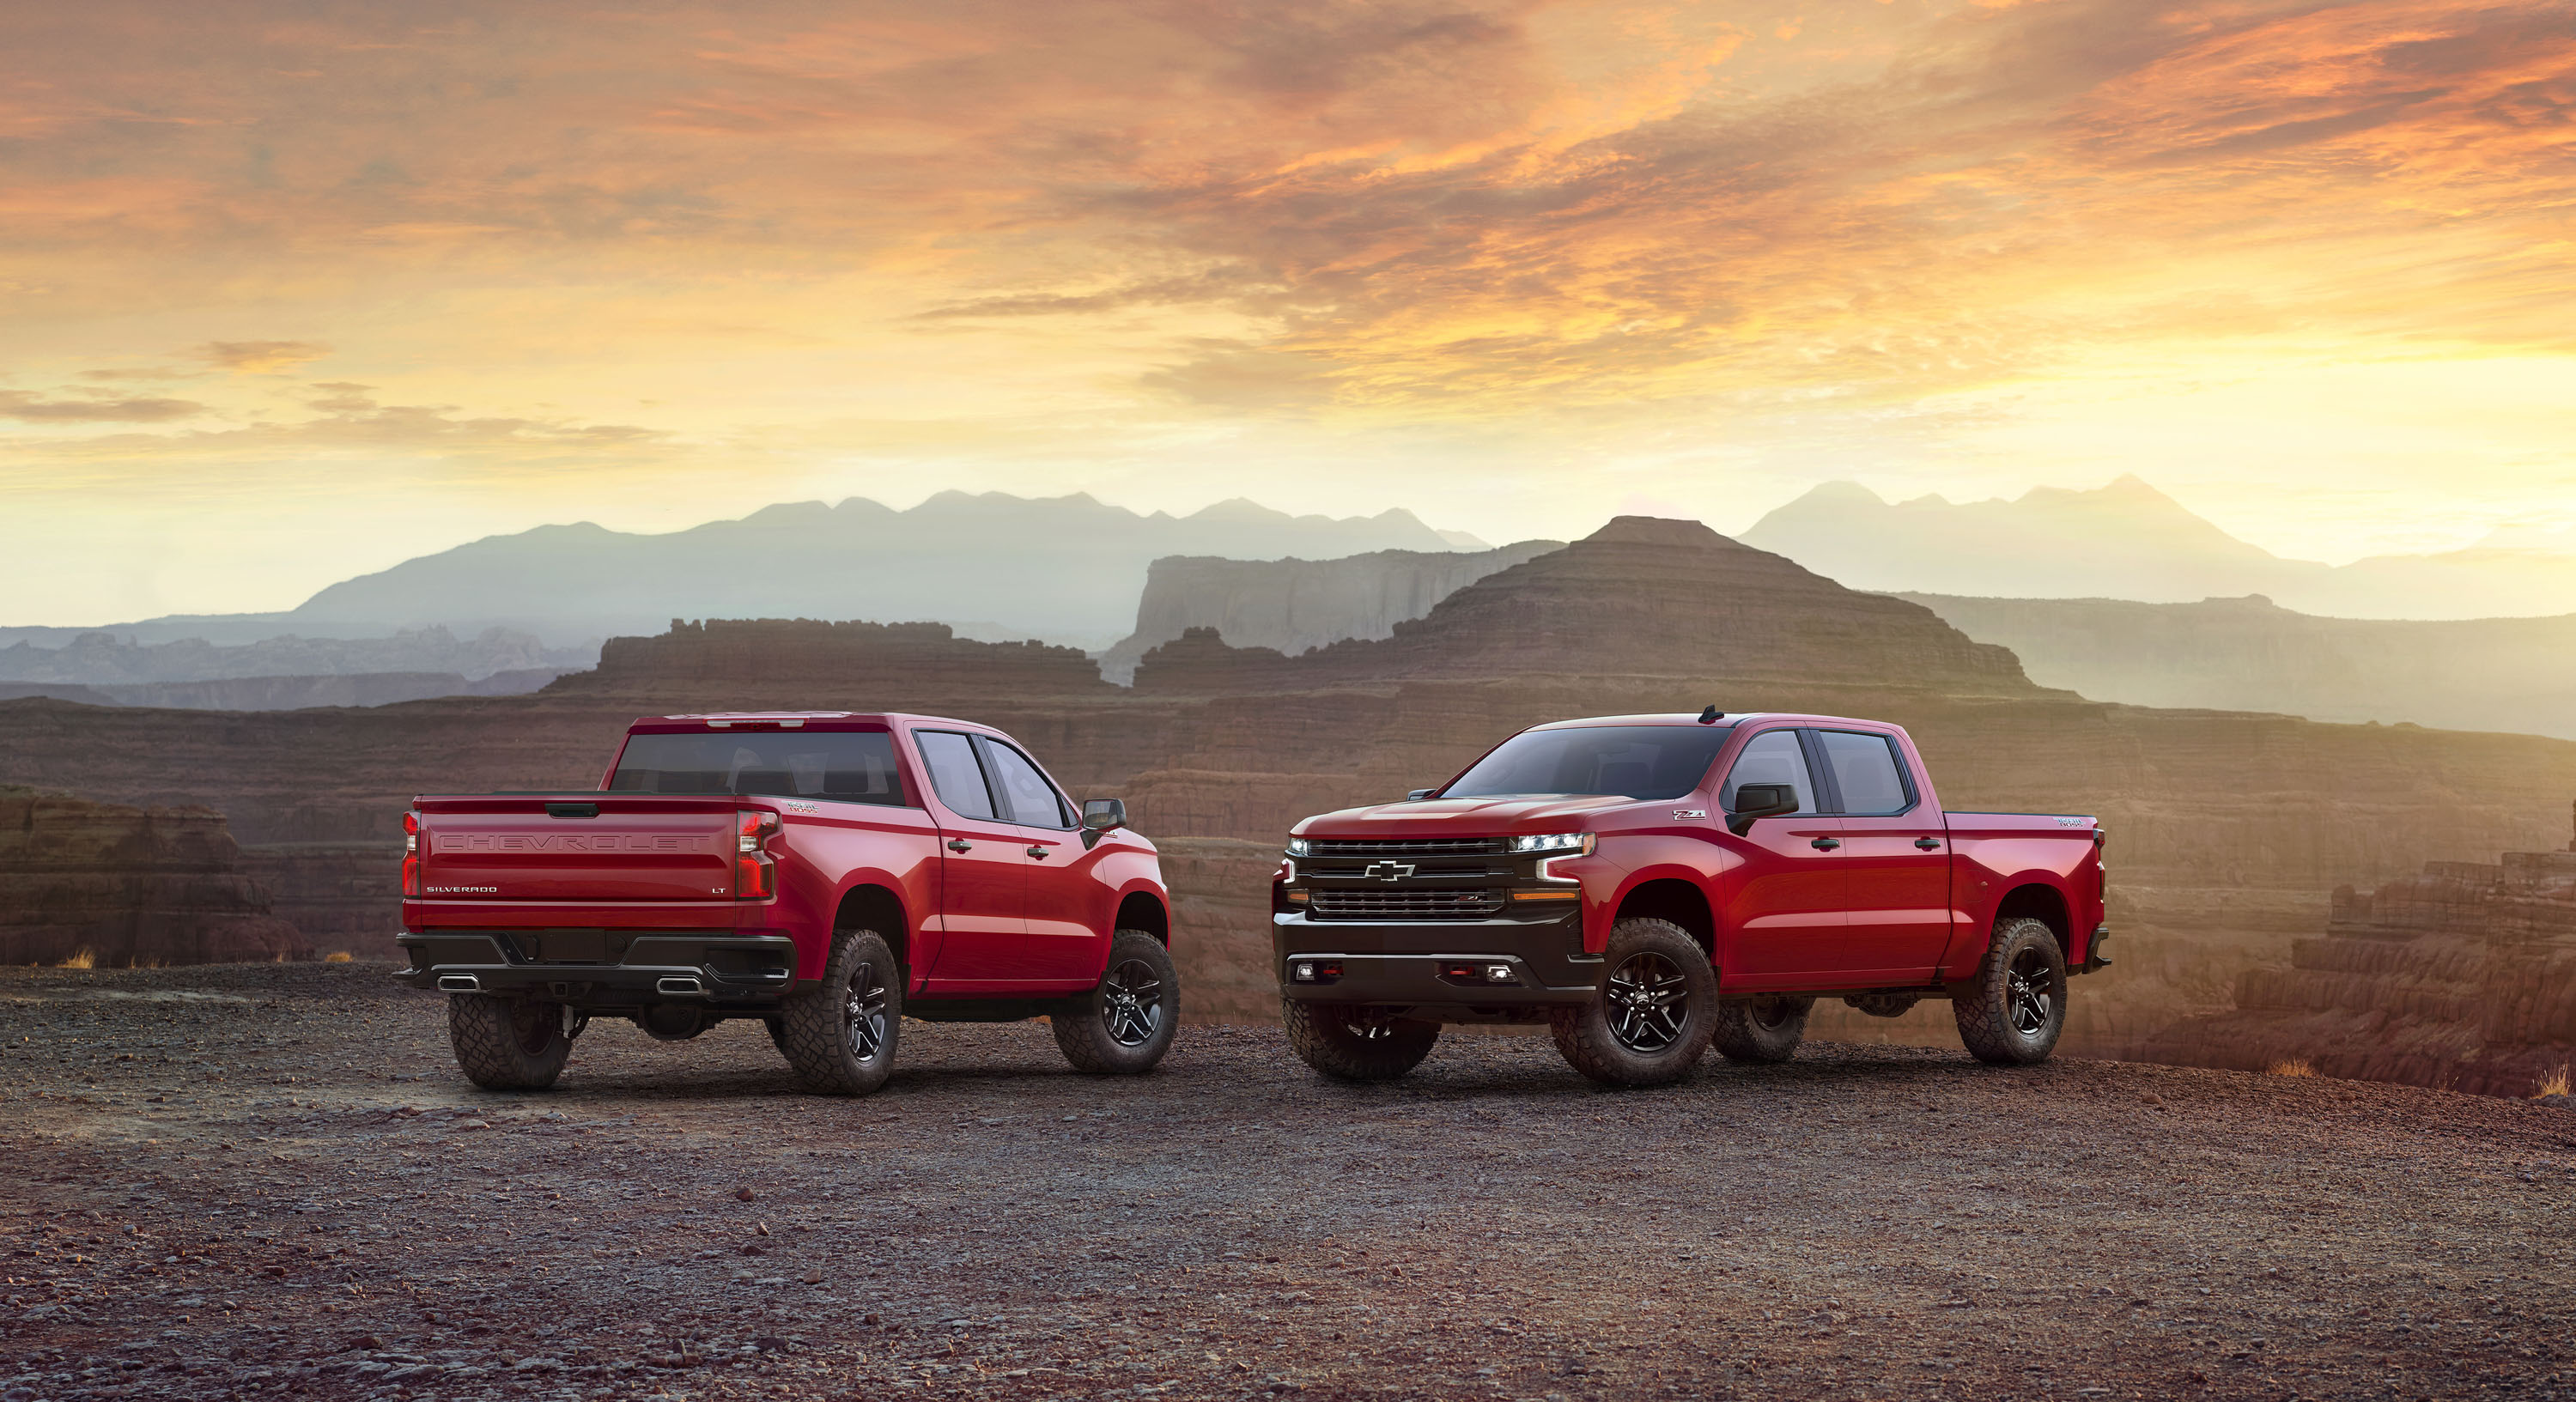 Wallpaper Selections of the Day: 2019 Chevy Silverado